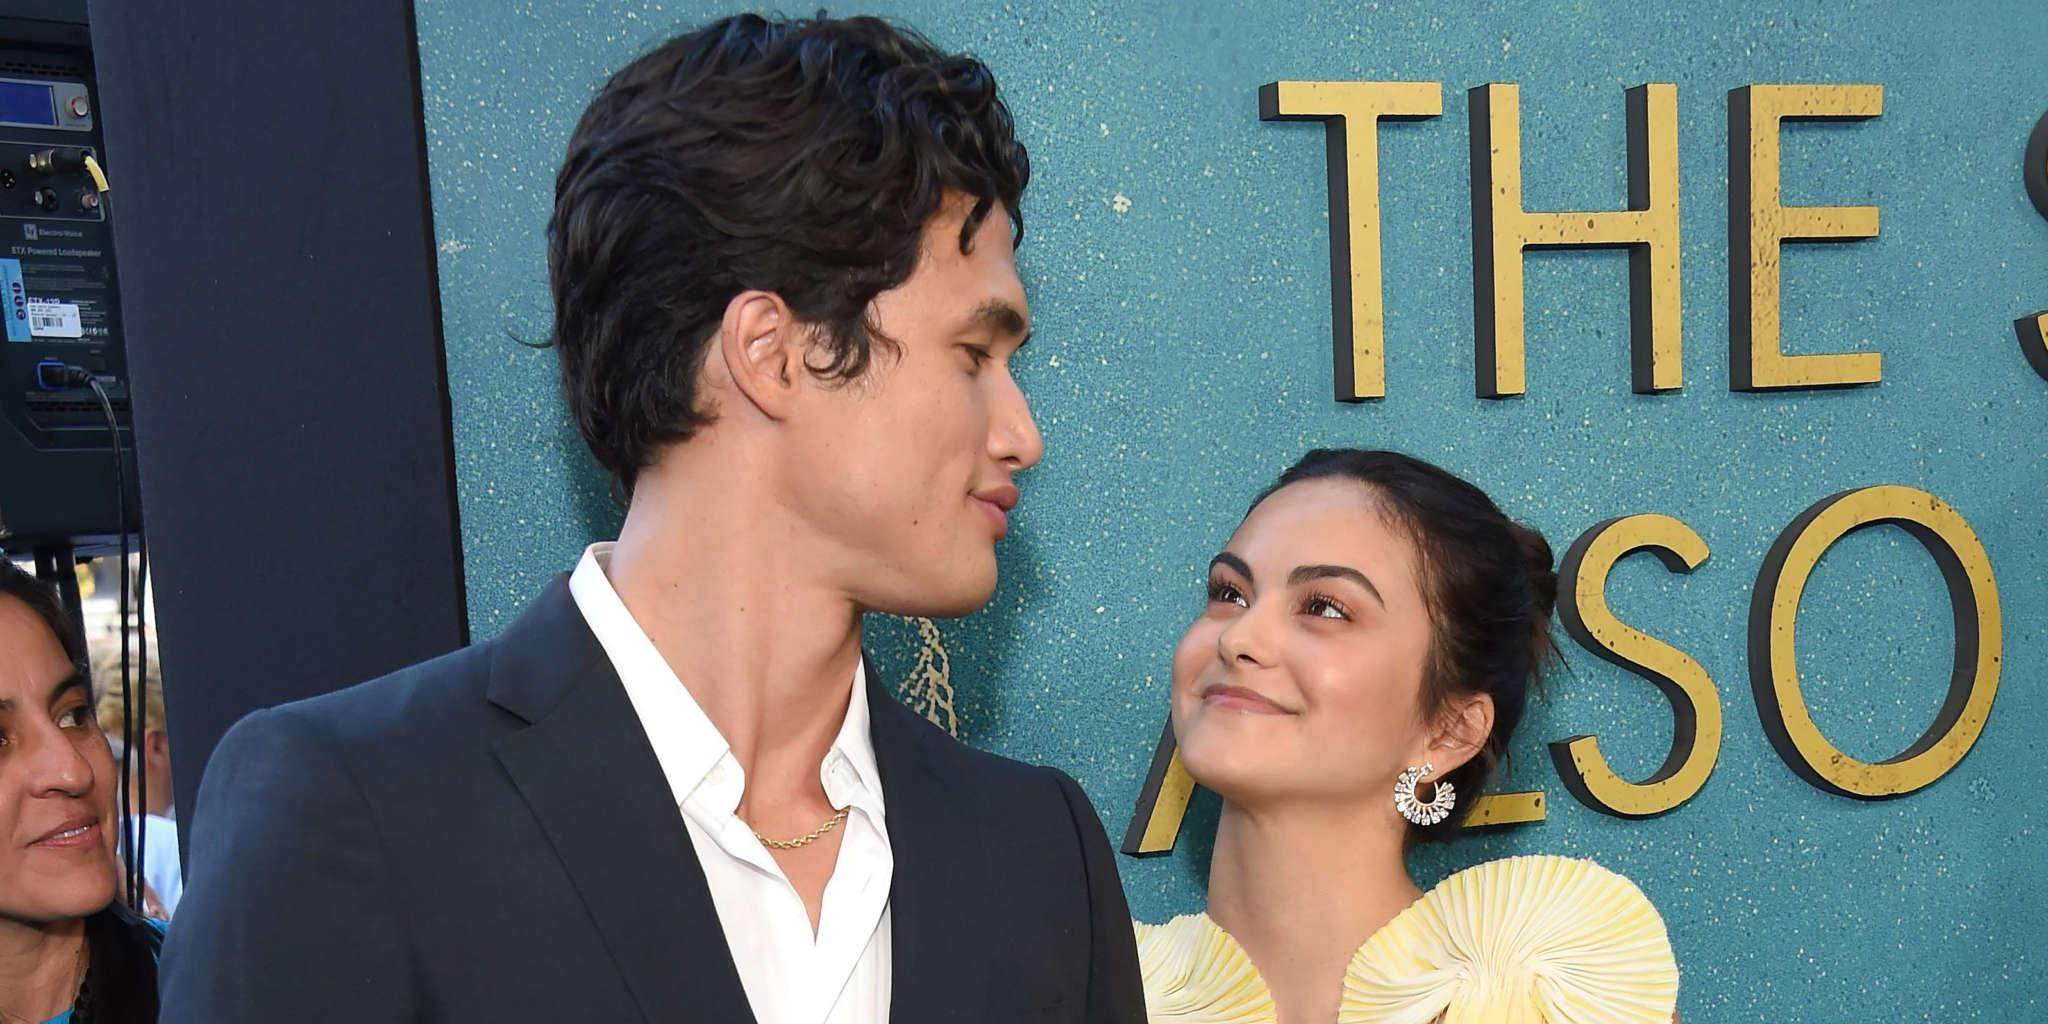 Camila Mendes And Charles Melton Mark Their 1-Year Anniversary With Sweet Messages And PDA Pics